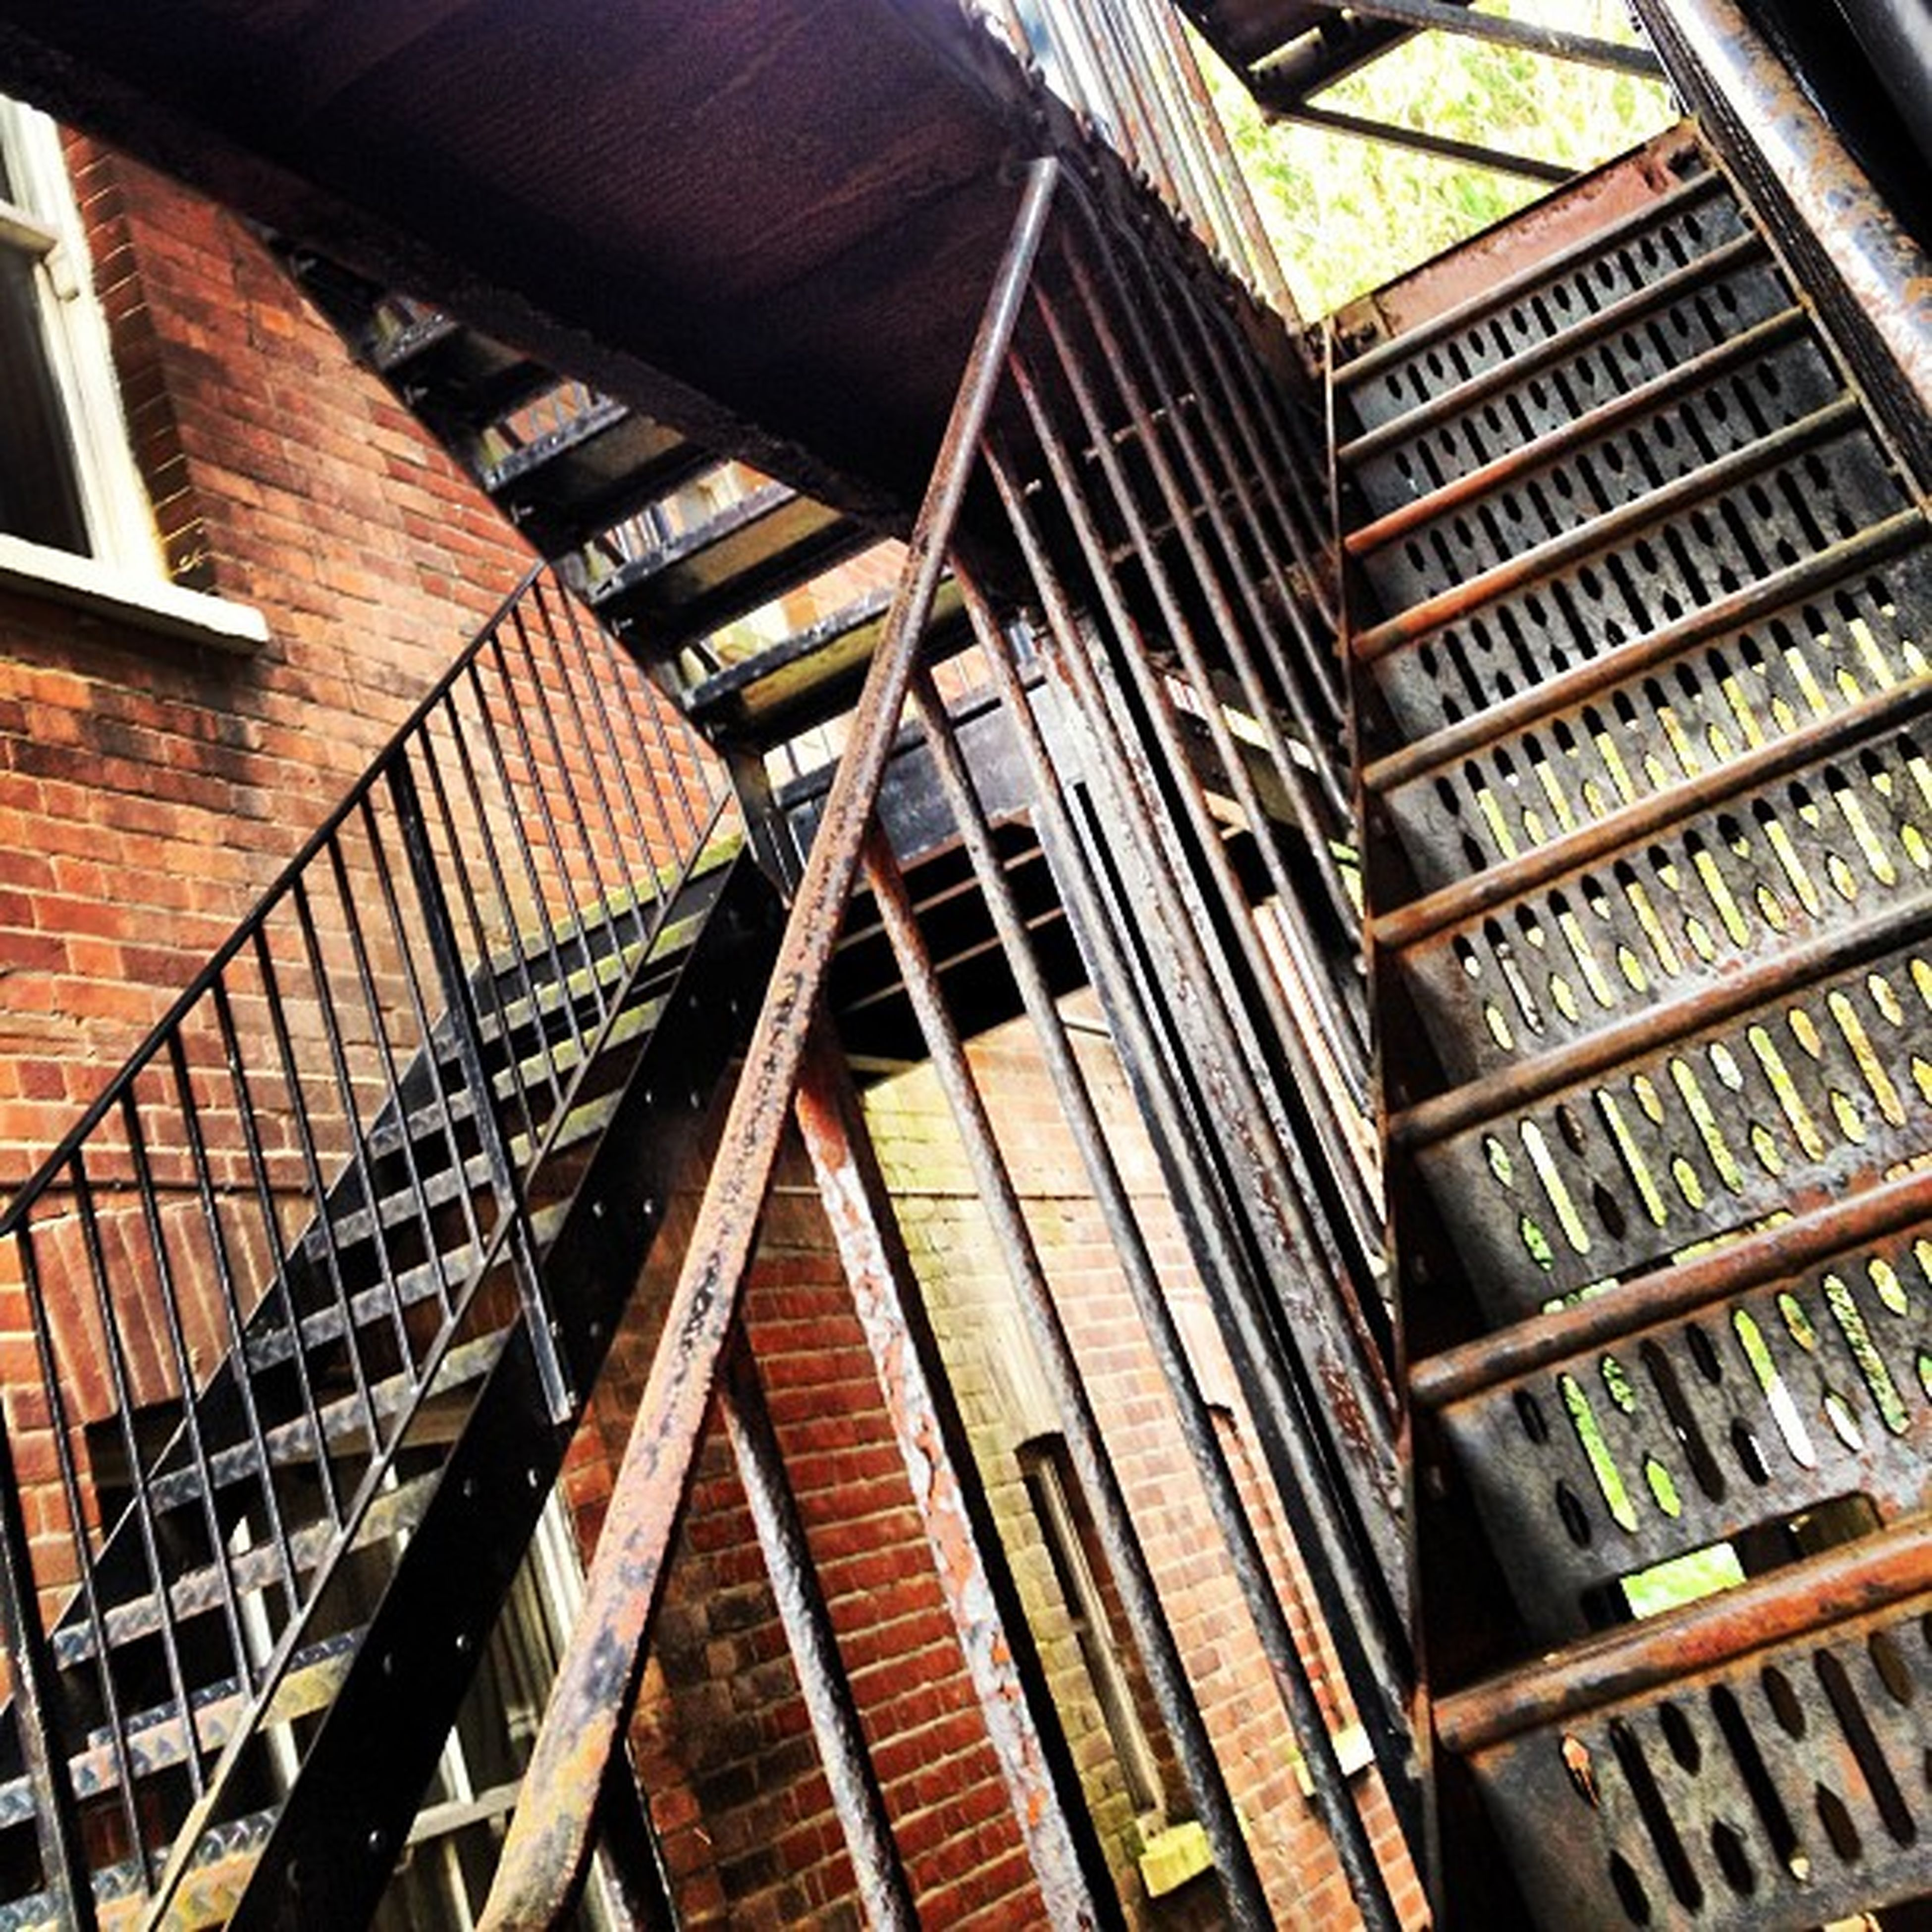 no people, architecture, staircase, built structure, day, outdoors